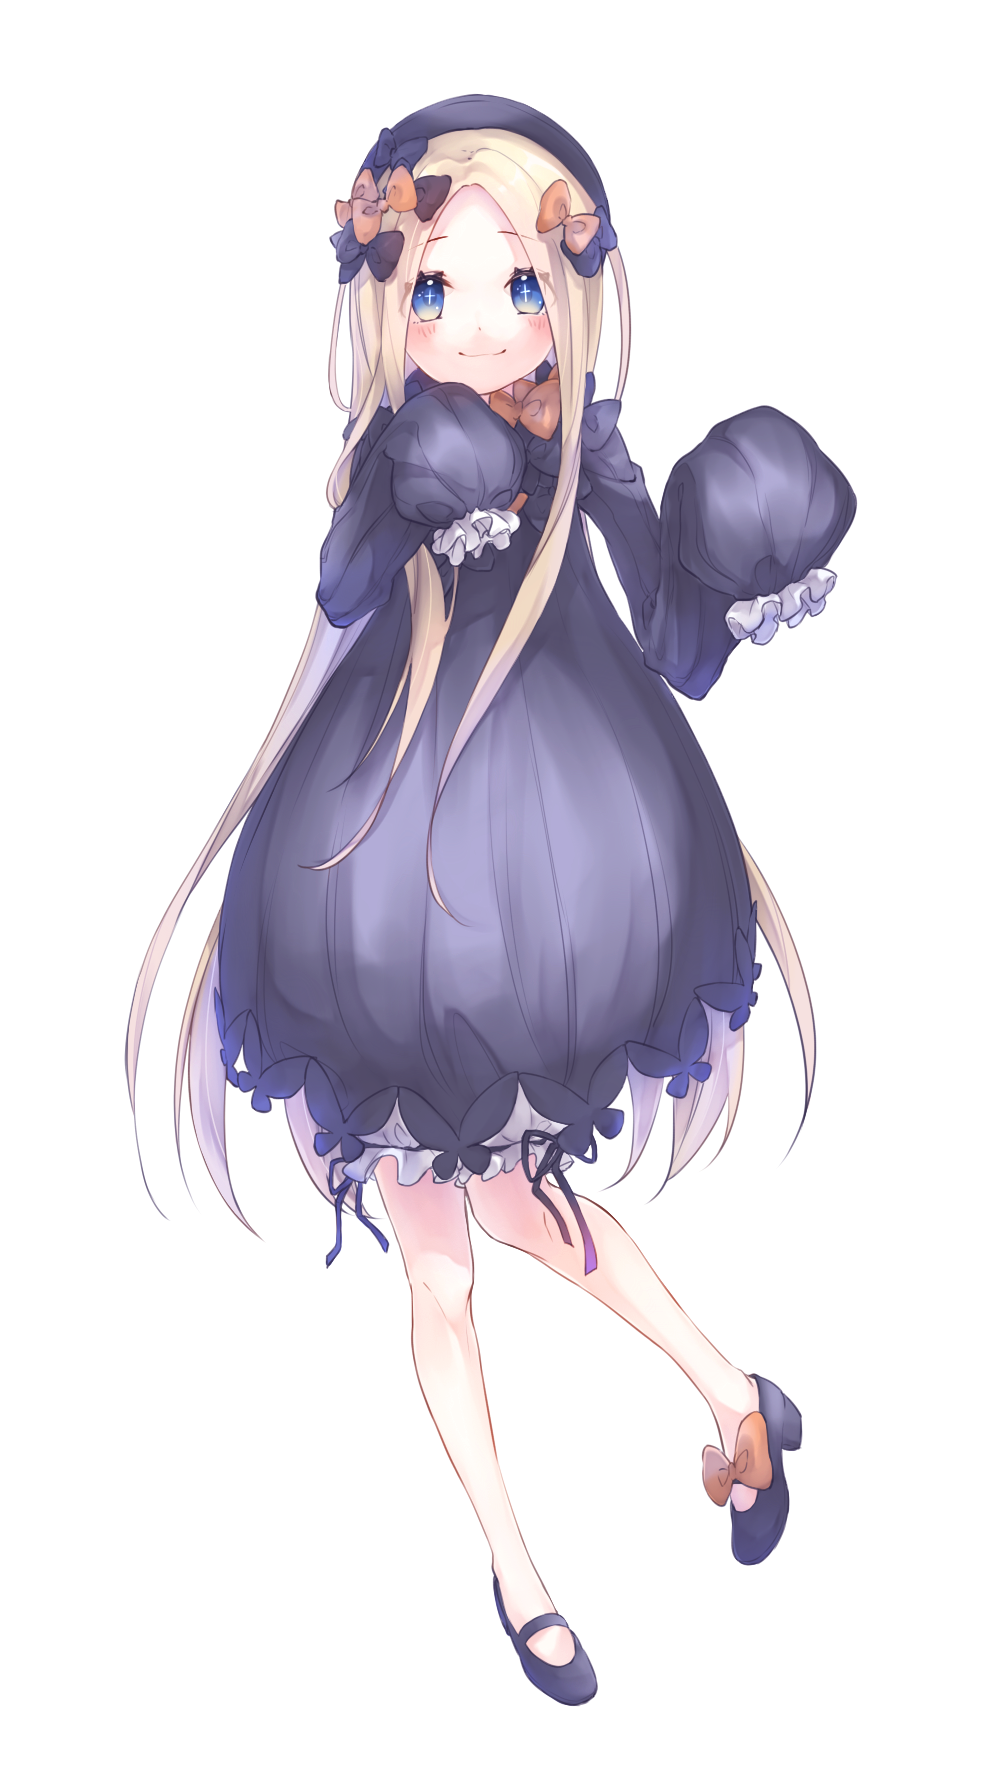 +_+ 1girl abigail_williams_(fate/grand_order) bangs black_bow black_dress black_footwear black_headwear blonde_hair bloomers blue_eyes blush bow bug butterfly closed_mouth commentary_request dress eyebrows_visible_through_hair fate/grand_order fate_(series) forehead full_body hair_bow hands_up hat highres insect long_hair long_sleeves looking_at_viewer orange_bow parted_bangs shoes simple_background sleeves_past_fingers sleeves_past_wrists smile solo standing standing_on_one_leg underwear very_long_hair white_background white_bloomers yoru_(laciexalice)